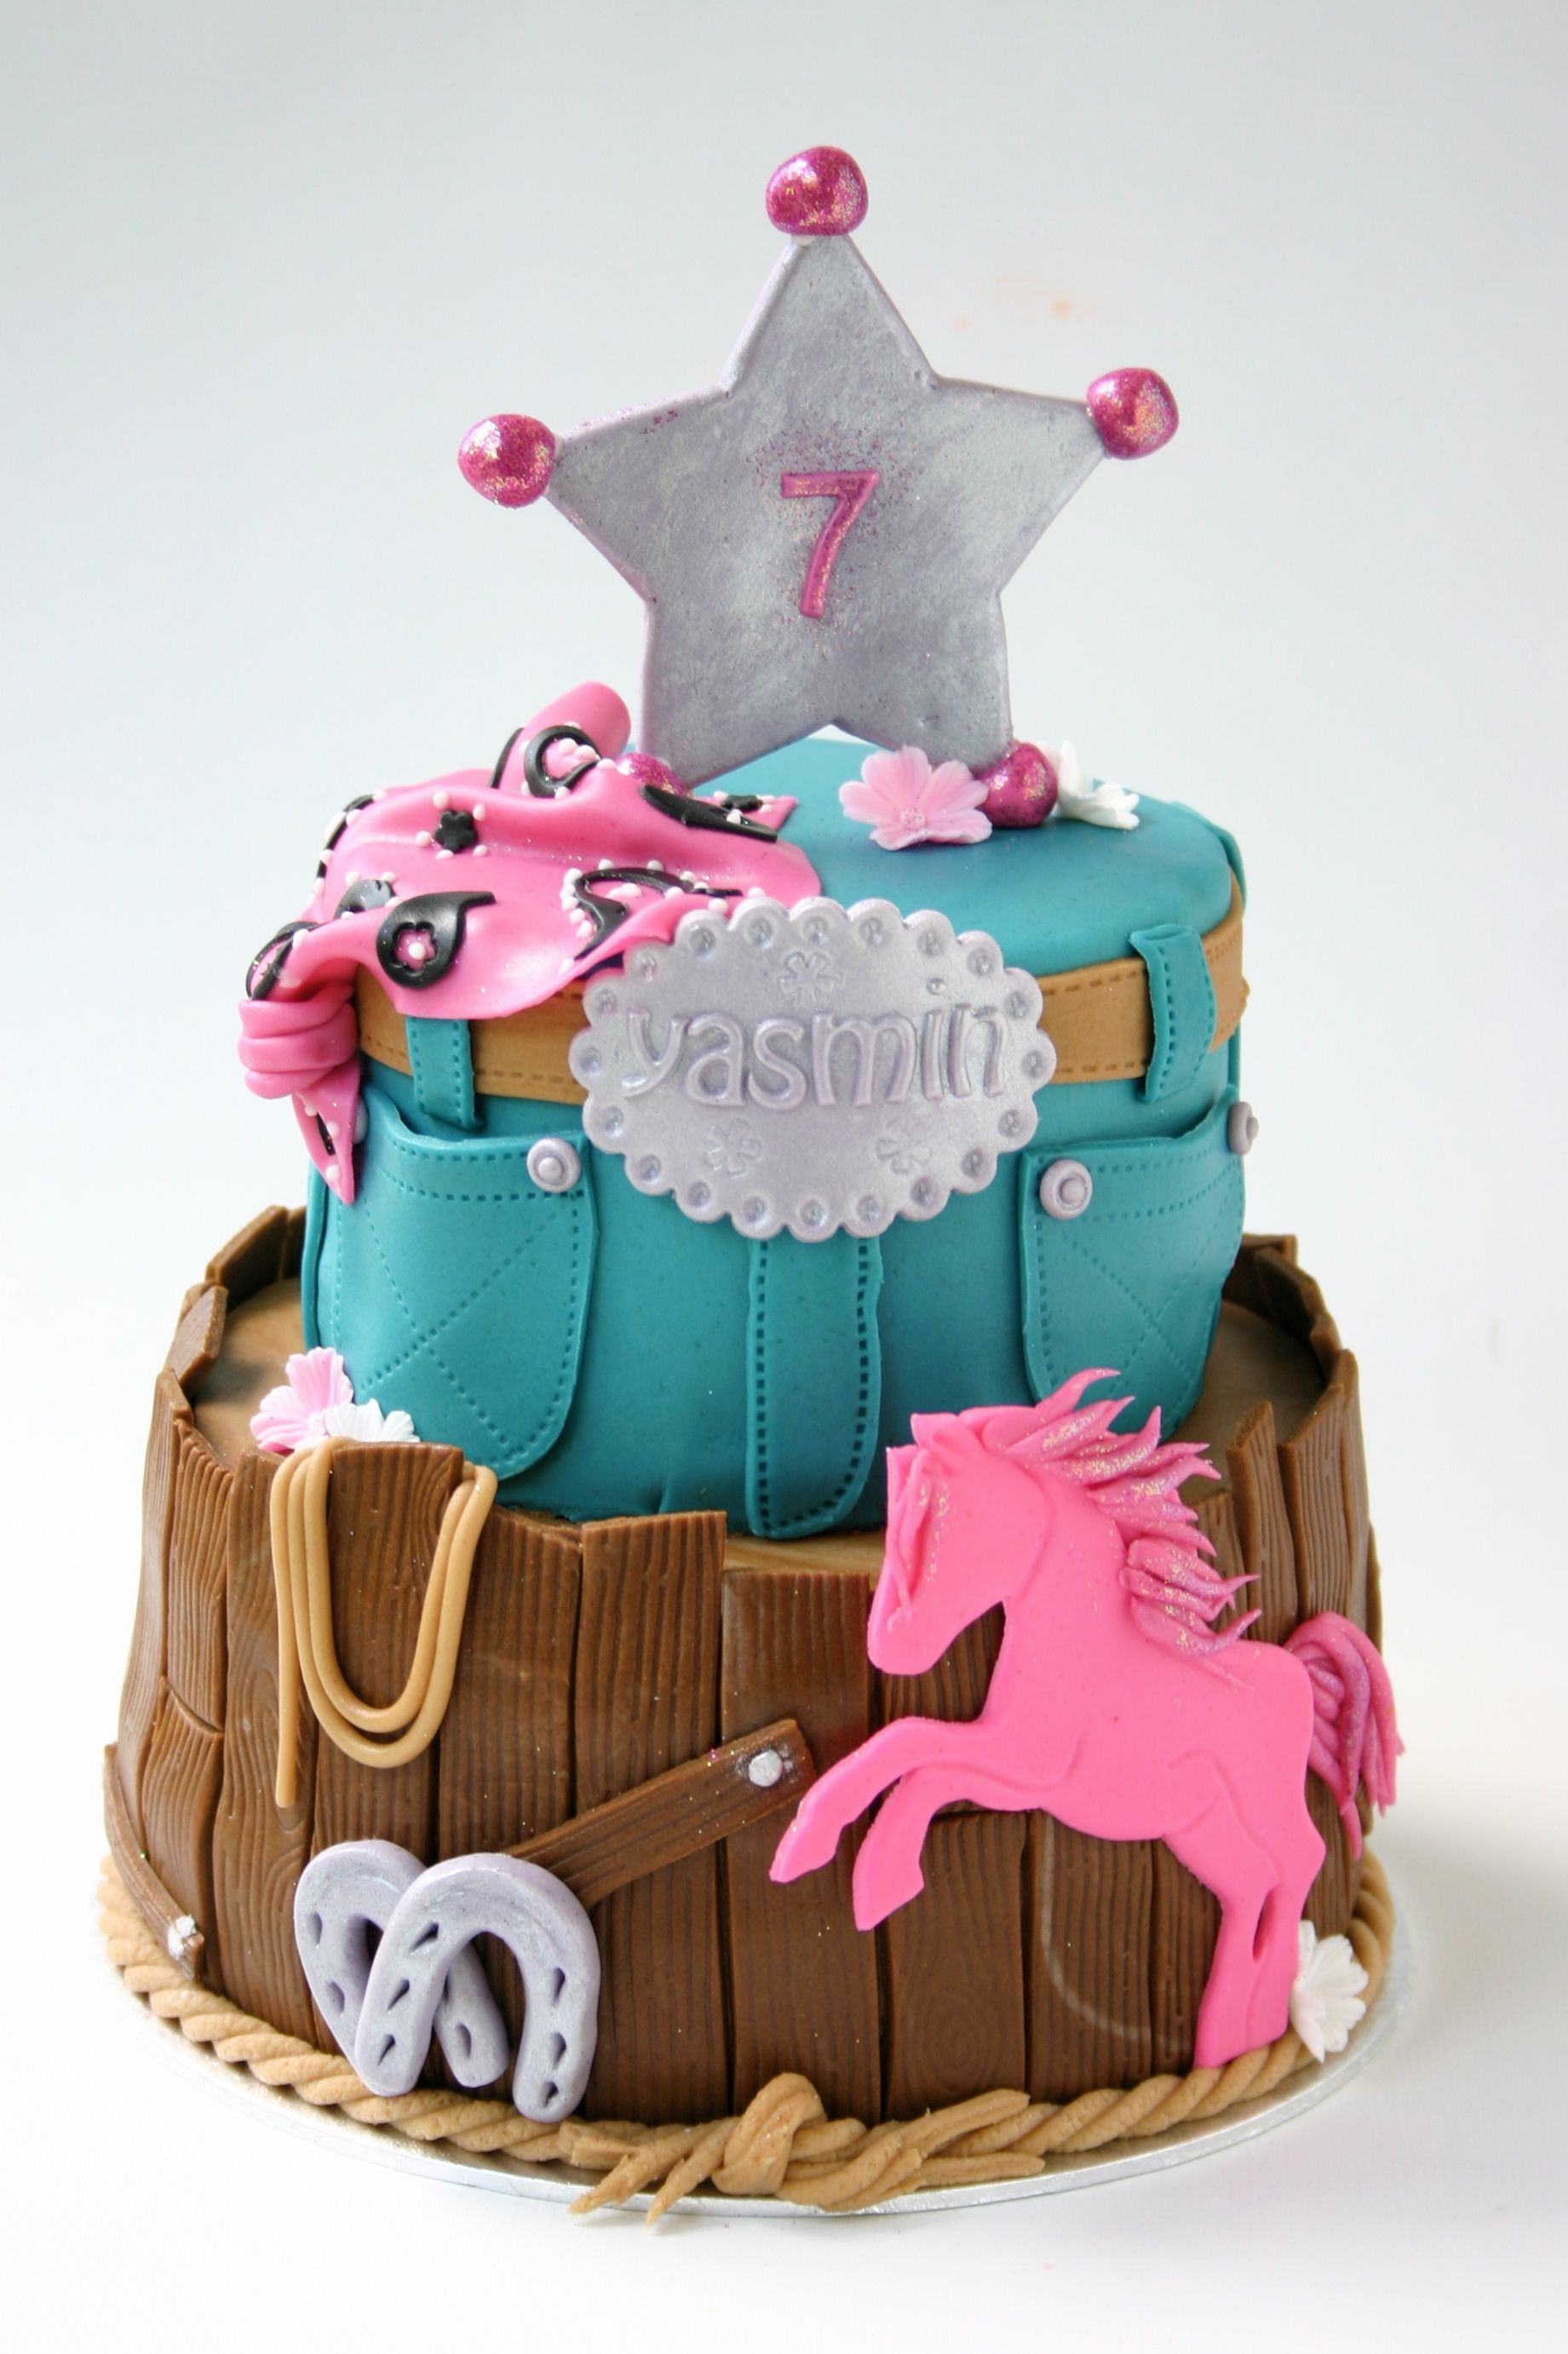 Cowgirl cake a not so sweet horse cake for a little girl cowgirl cake a not so sweet horse cake for a little negle Choice Image